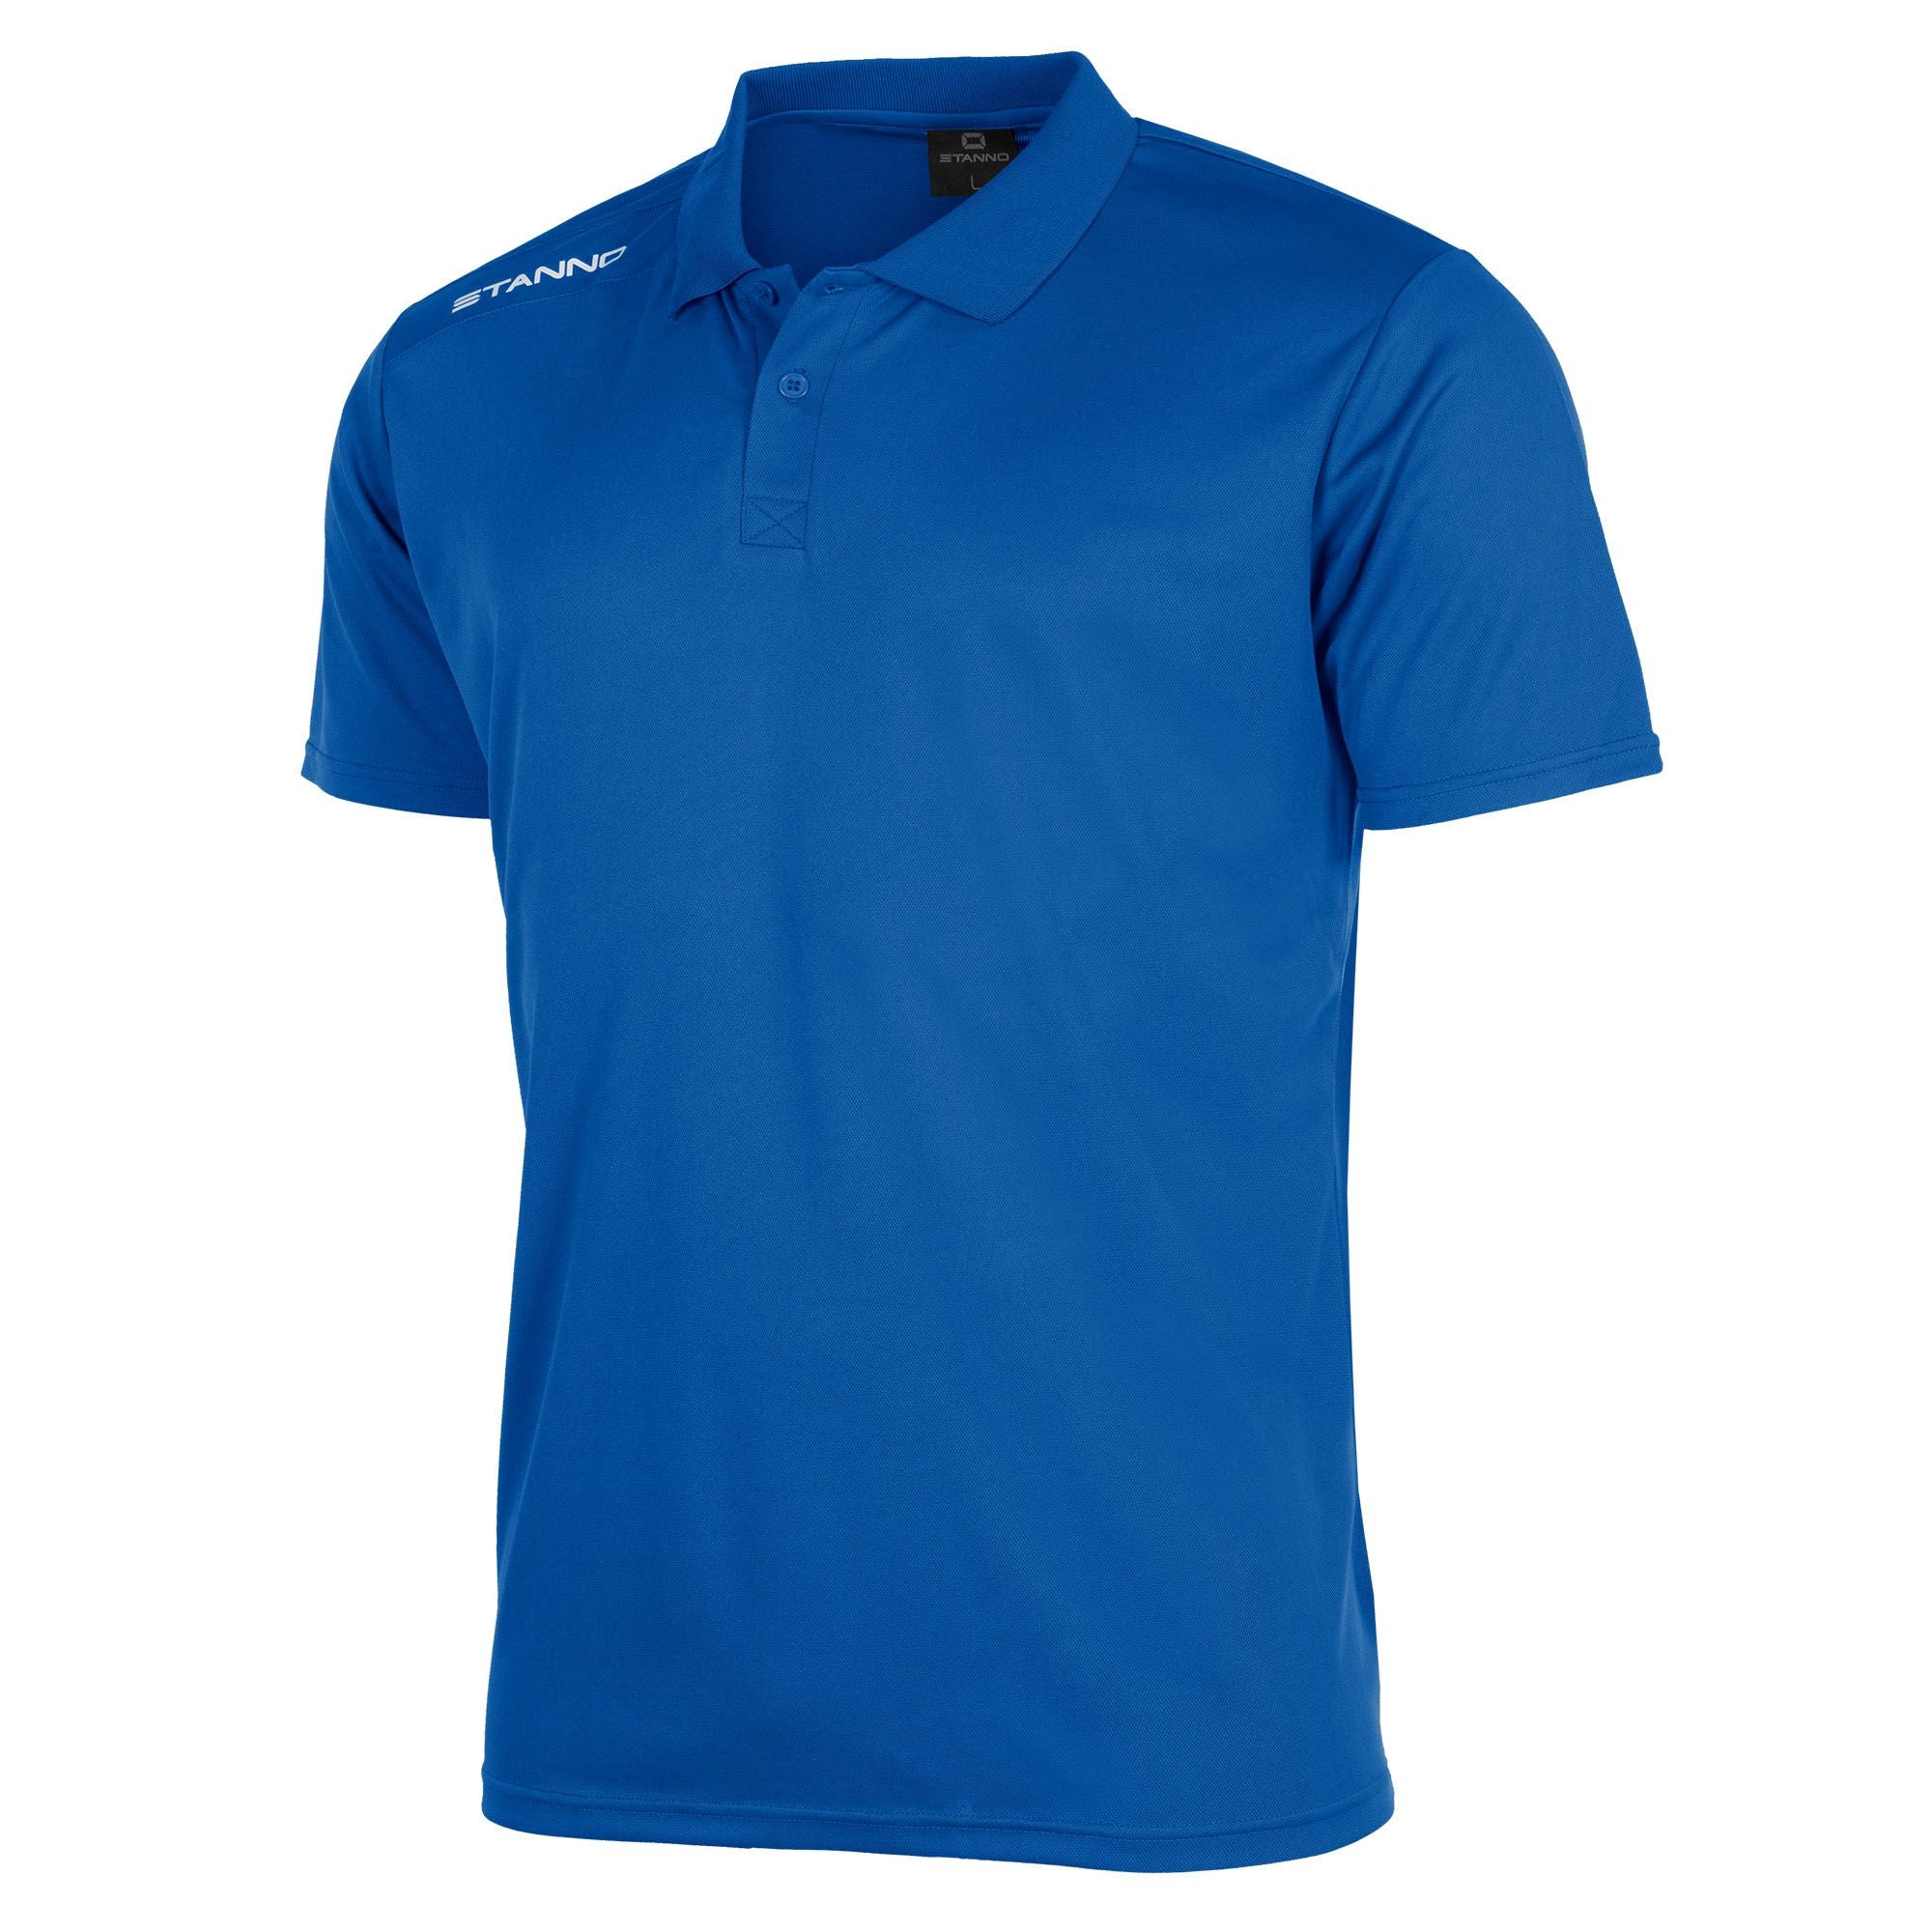 Front of Stanno Field Polo Shirt in royal with white text logo on right shoulder